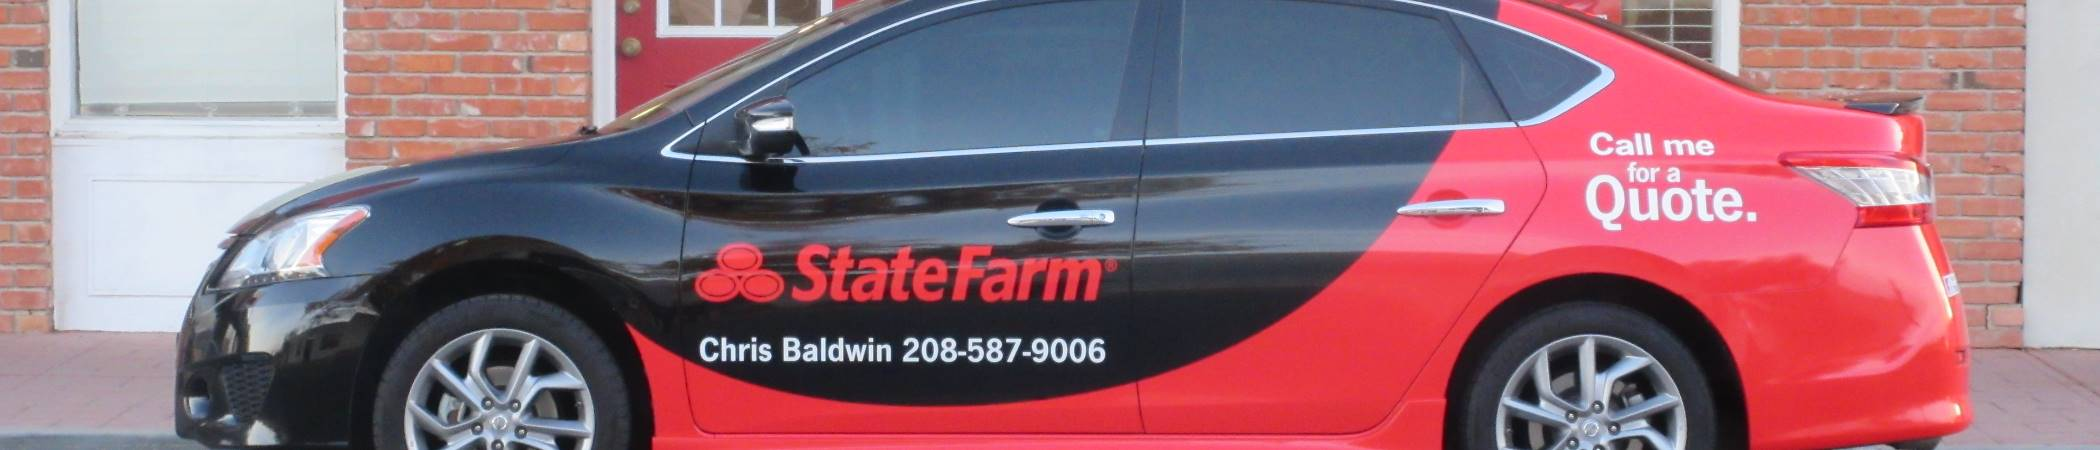 Chris Baldwin State Farm Insurance in Mountain Home, ID | Home, Auto Insurance & more